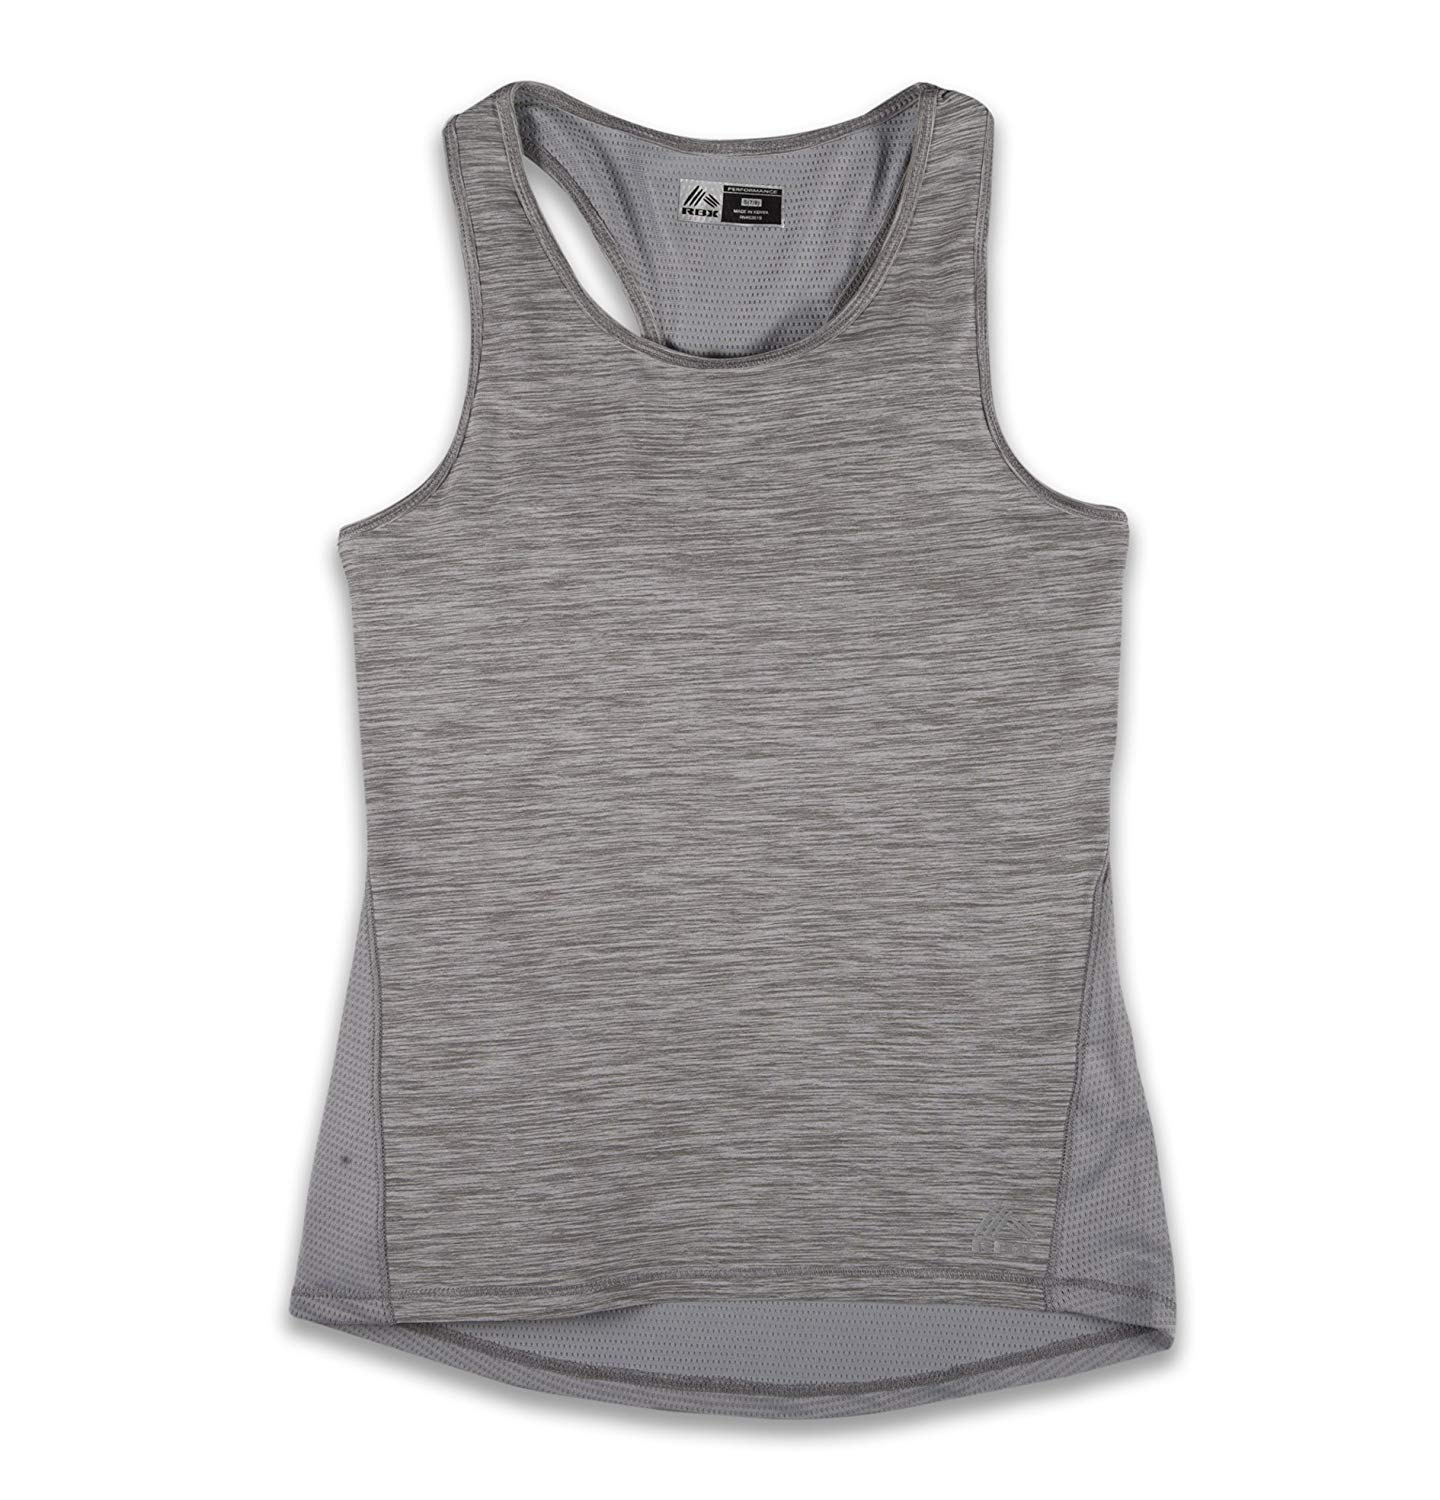 f89e82f6c8a85d Get Quotations · RBX Active Girl s Basic Print Racerback Tank Top